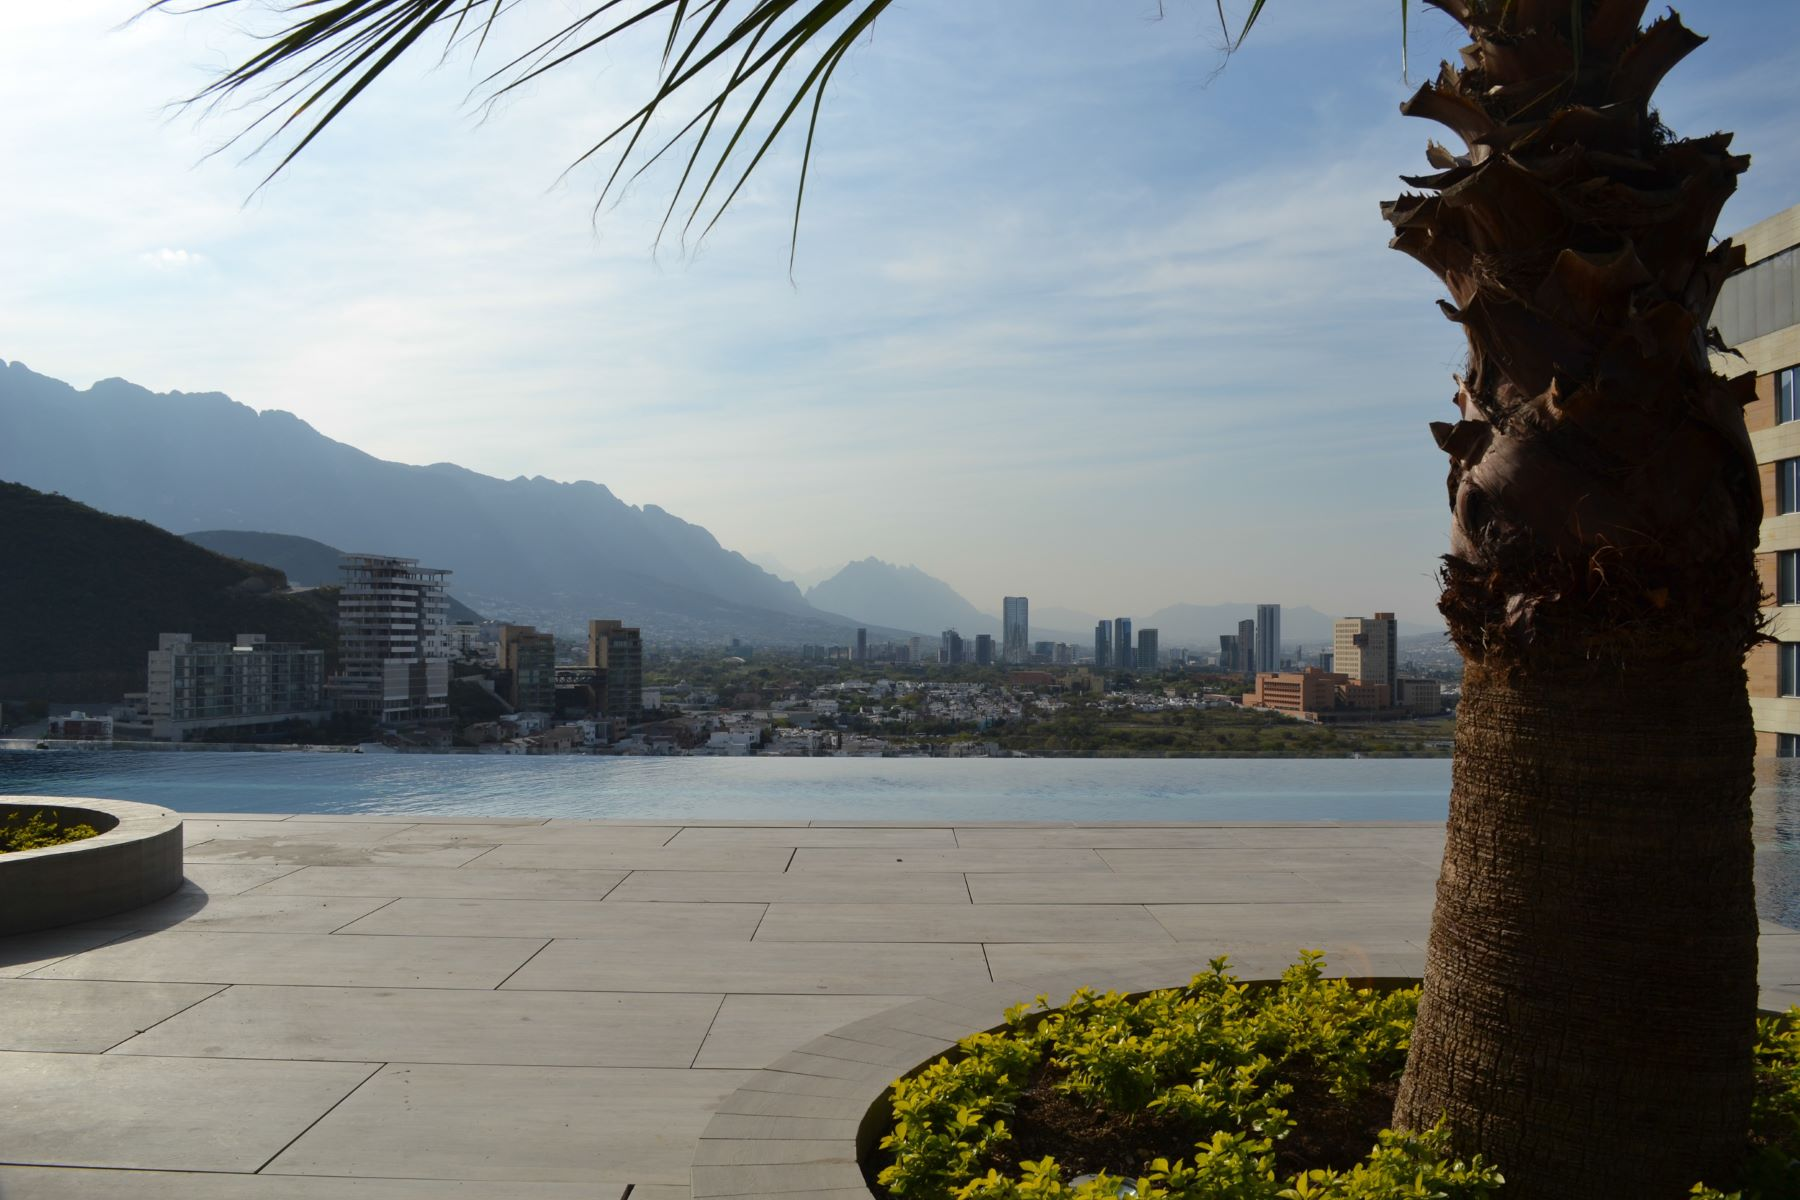 شقة للـ Rent في DEPARTAMENTO TORRE KOI David Alfaro Siqueiros 104 Monterrey, Other Areas In Mexico, 66278 Mexico